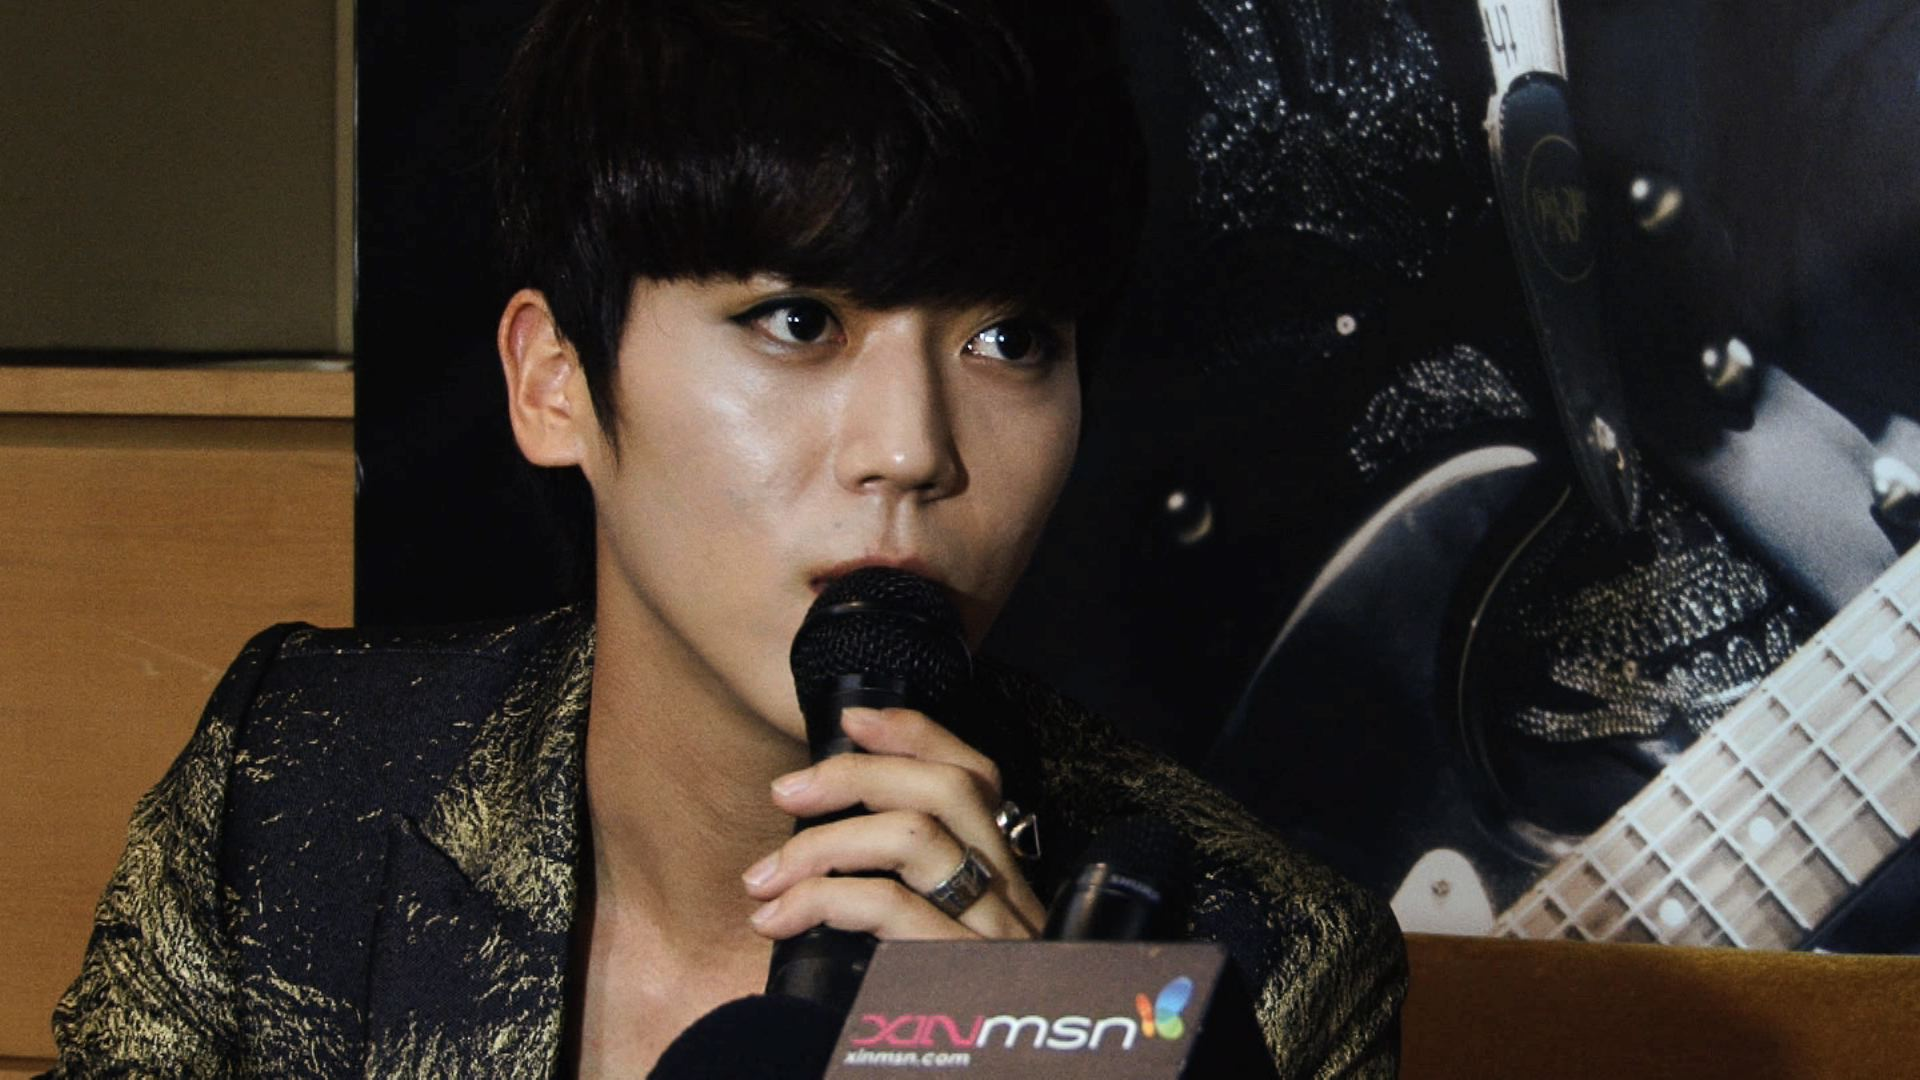 [Press Conference] Bii (필서진 / 畢書盡) – In Singapore 2013